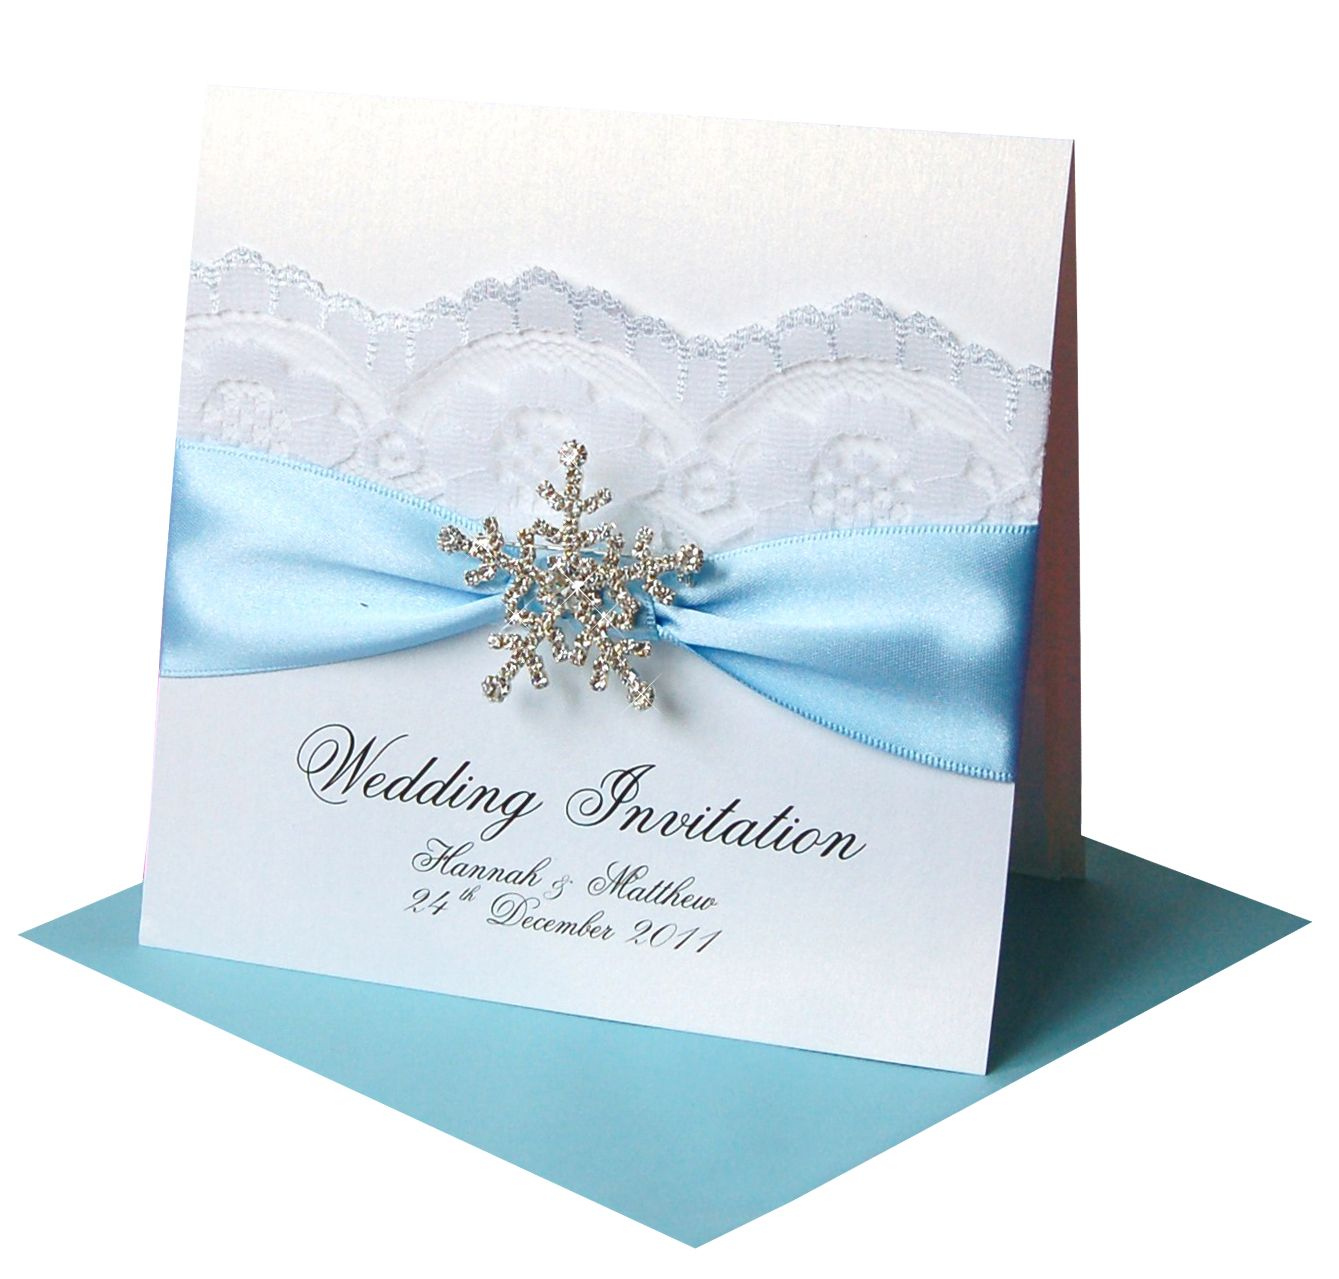 tie ribbon wedding invitation%0A Blue and White Wedding Invitation with Snowflake Brooch and Lace